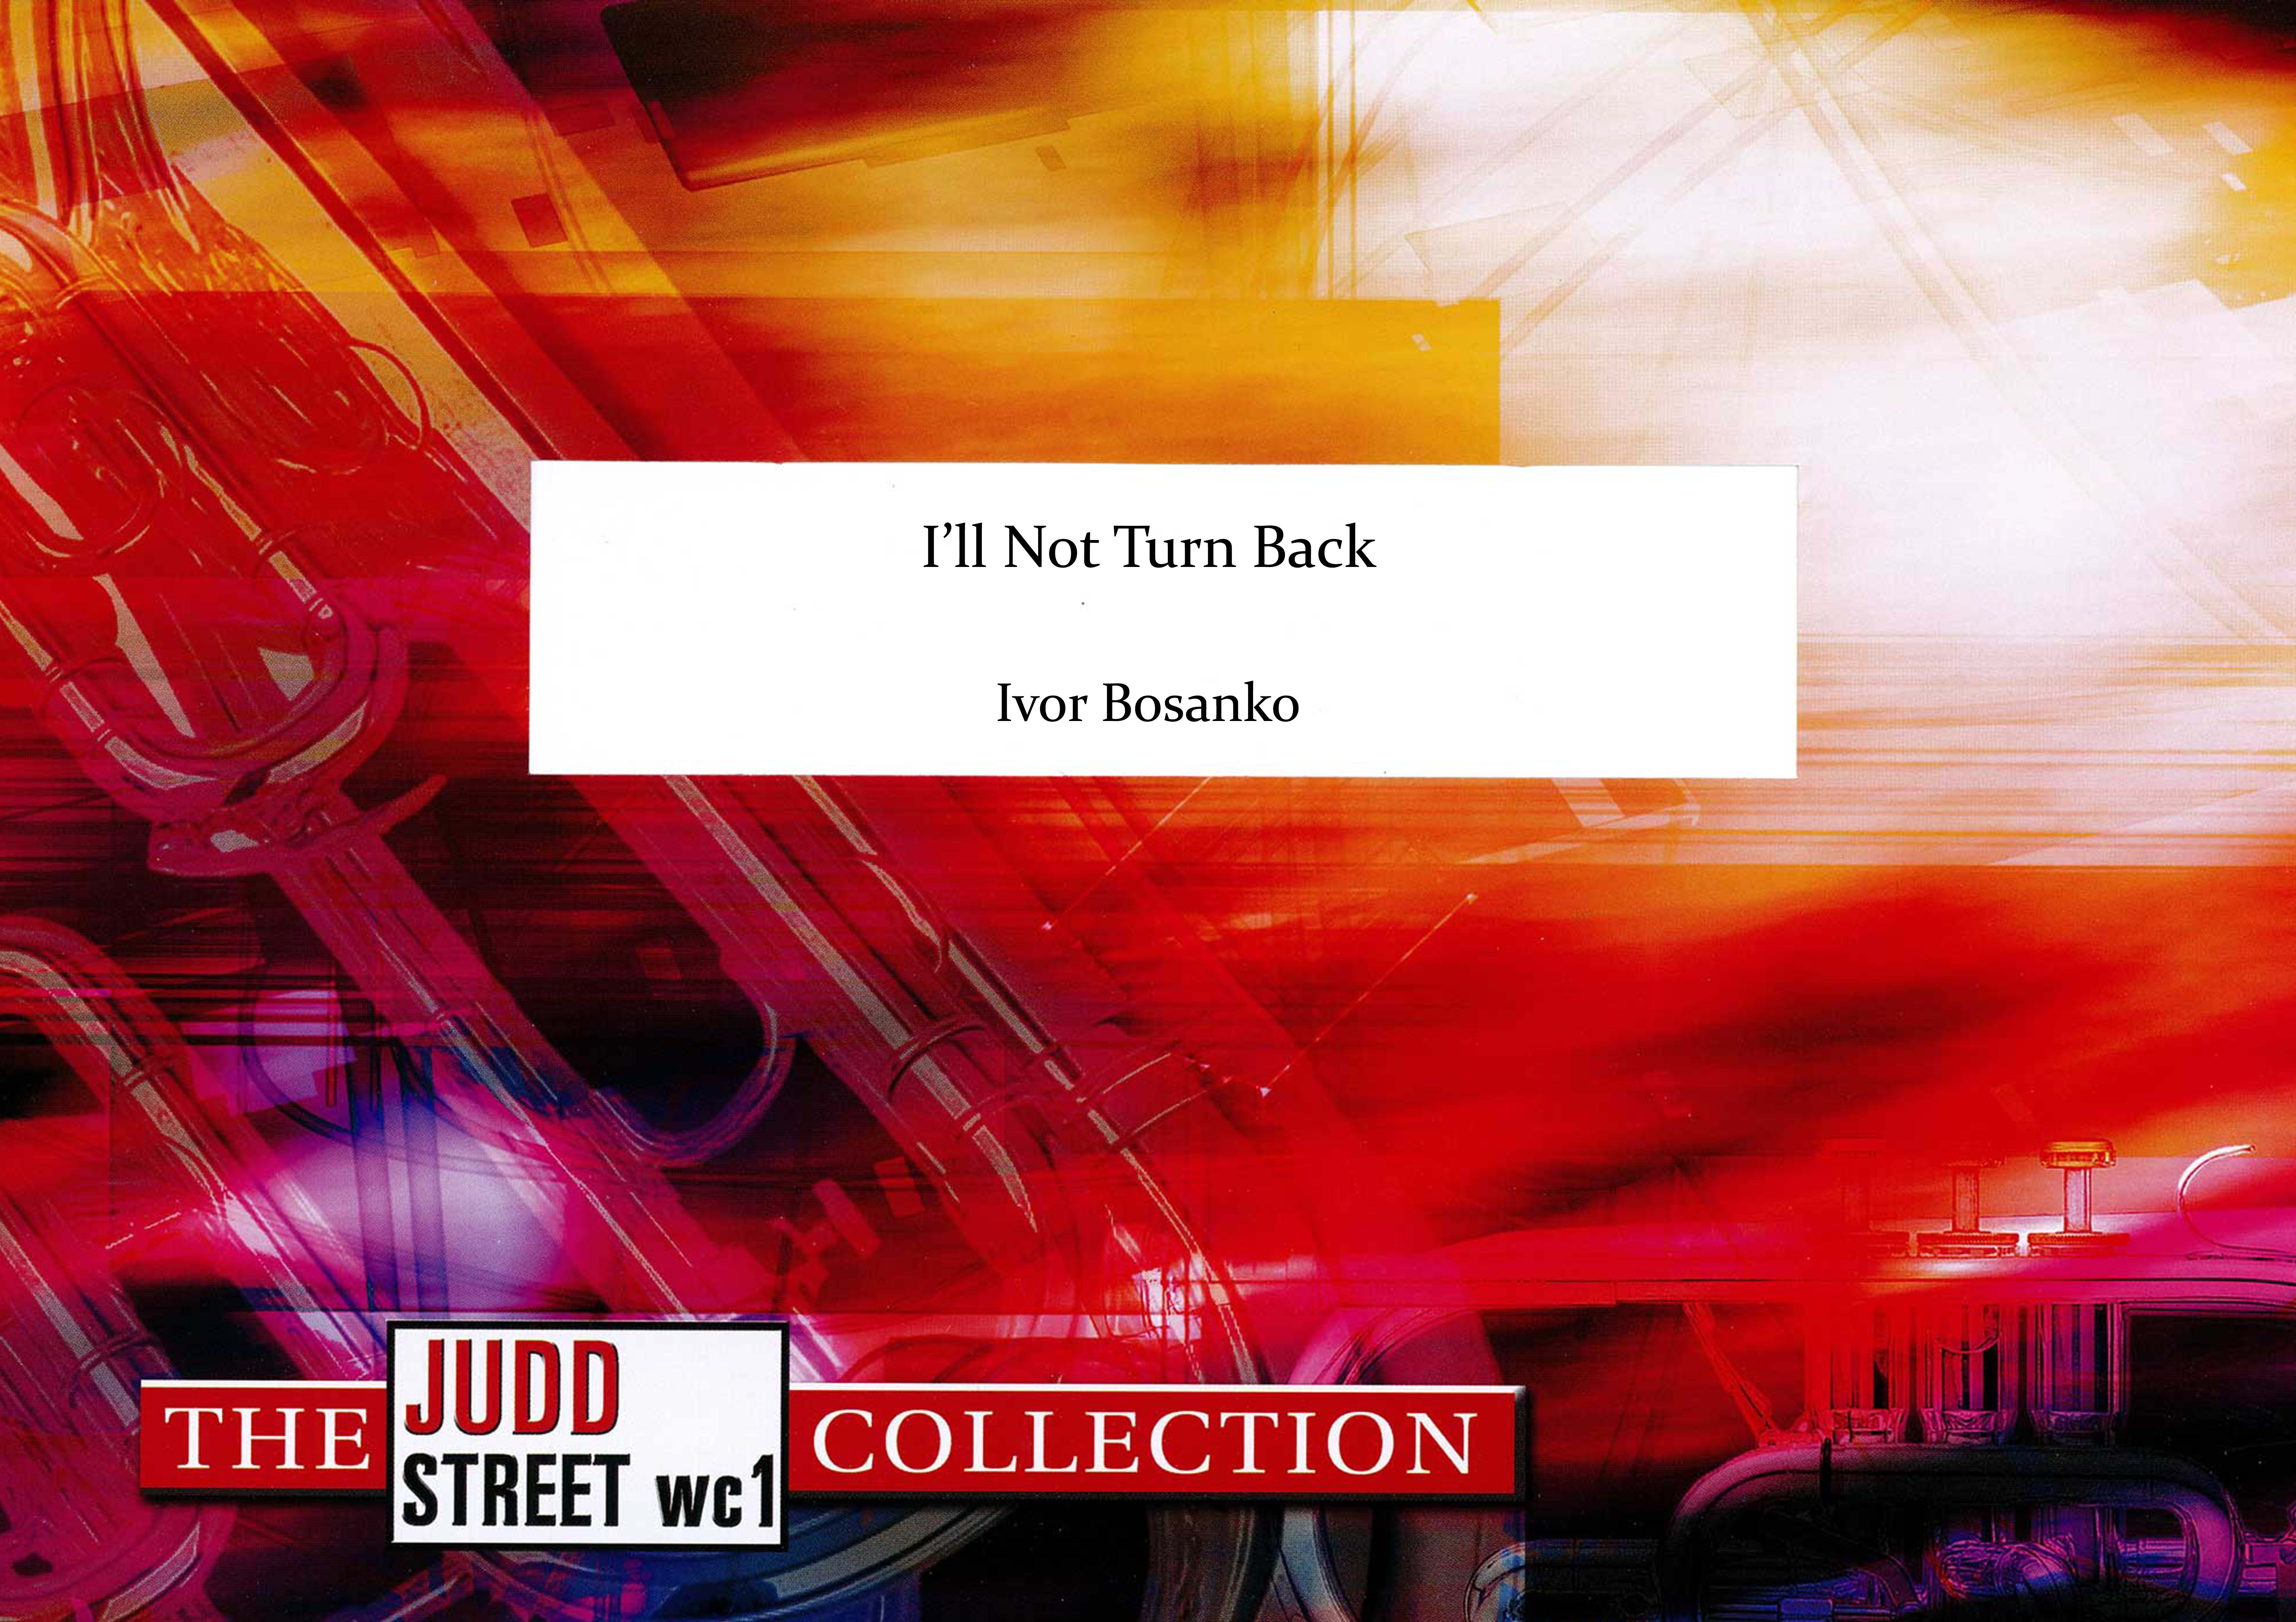 I'll Not Turn Back (Cornet and Euphonium Duet with Brass Band - Score and Parts)